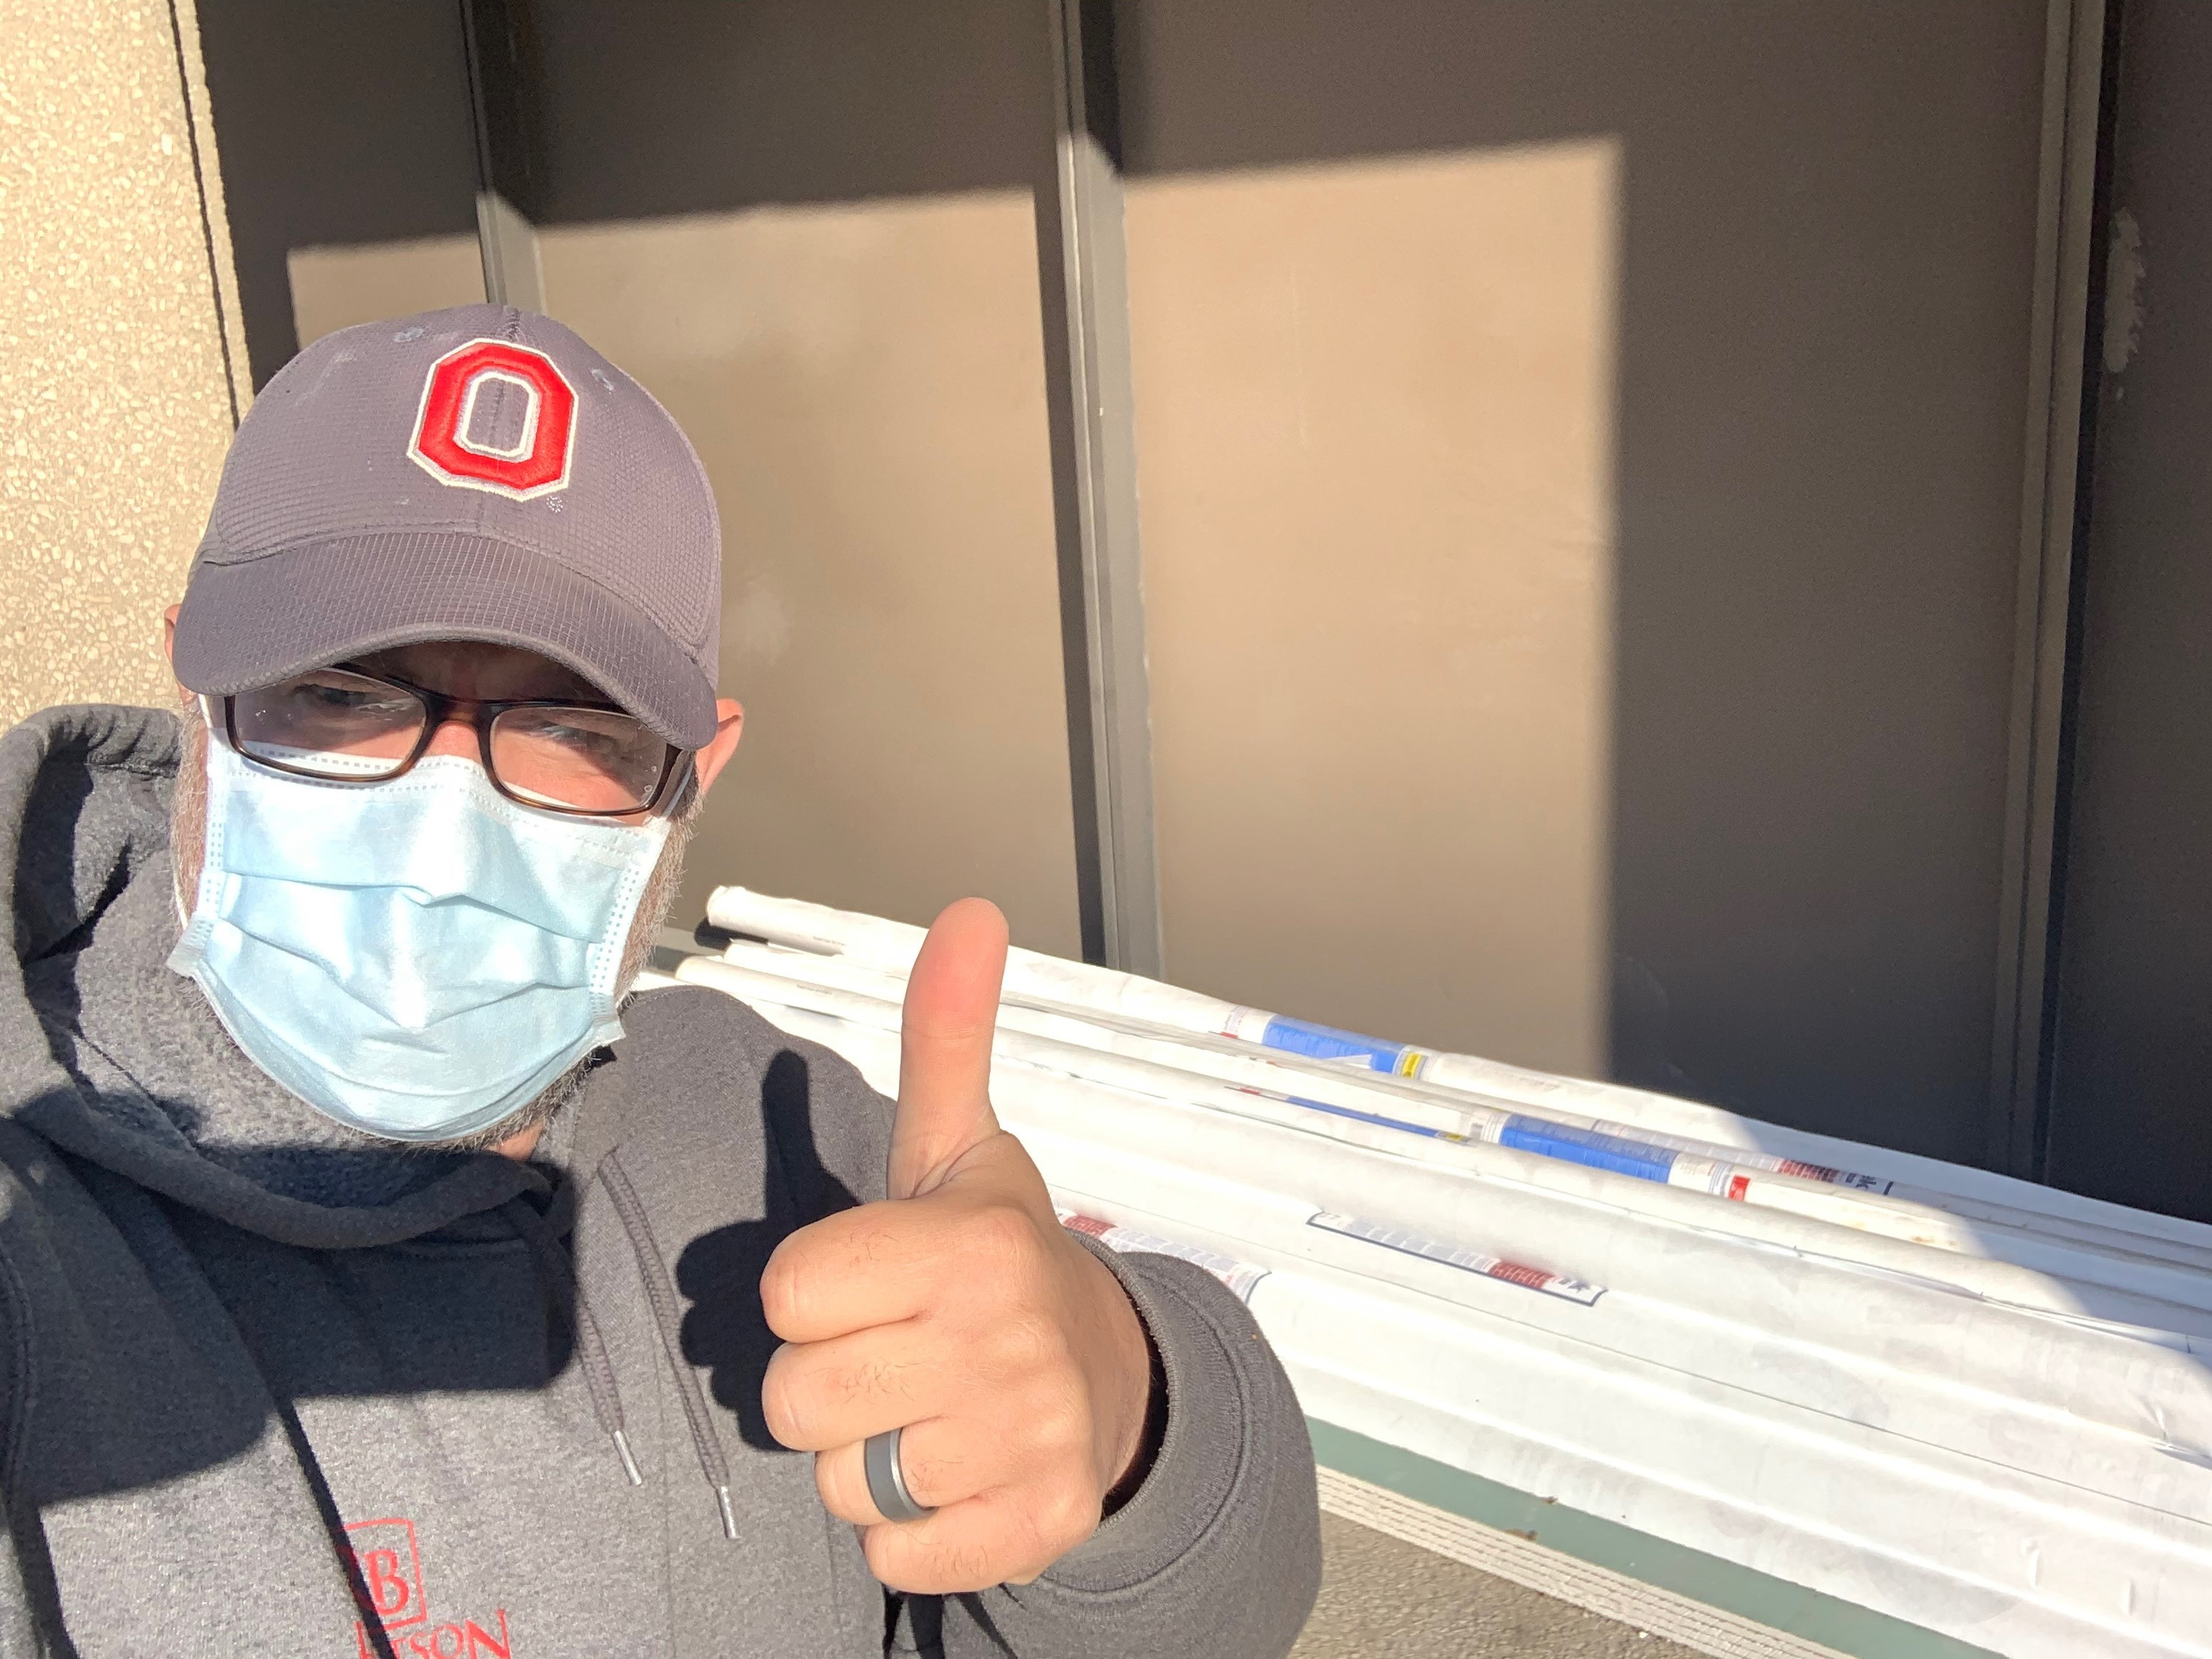 Man wearing mask giving thumbs up in front of donation